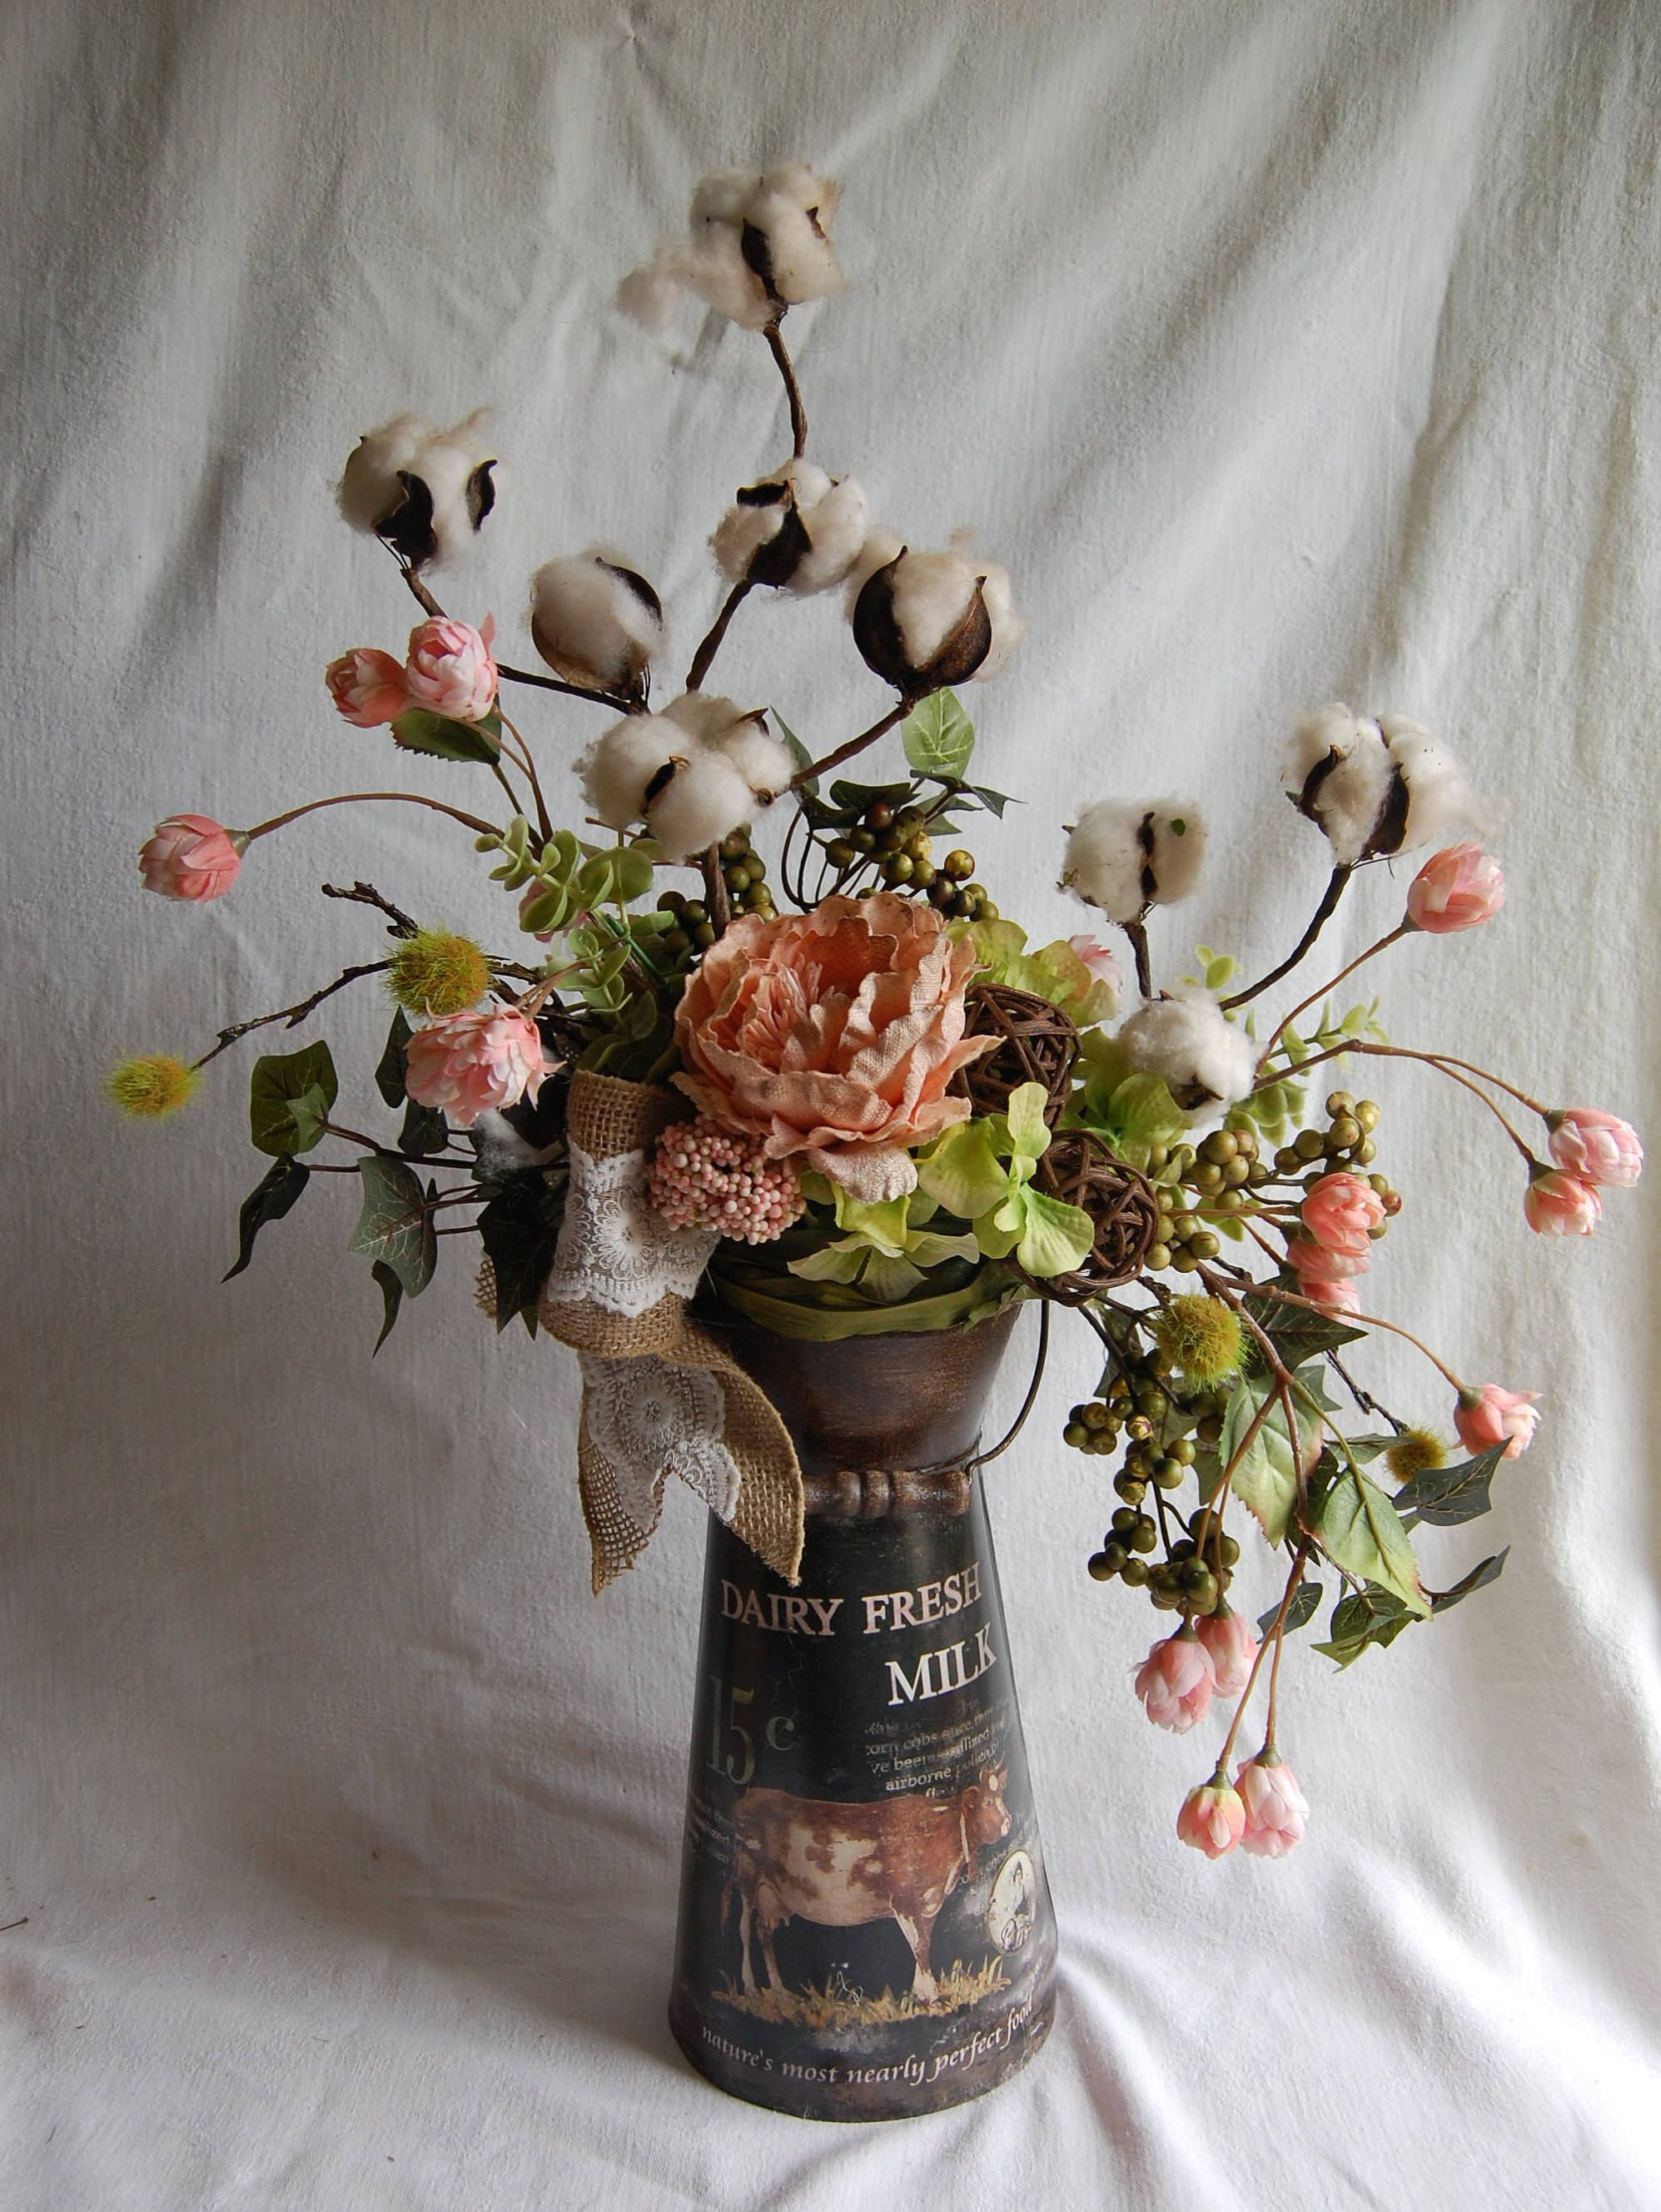 Lavender Blue Floral West Des Moines florist Lynda O Hara Silk Floral decor French Farmhouse Shabby Chic peach pink green brown cream Silk Floral